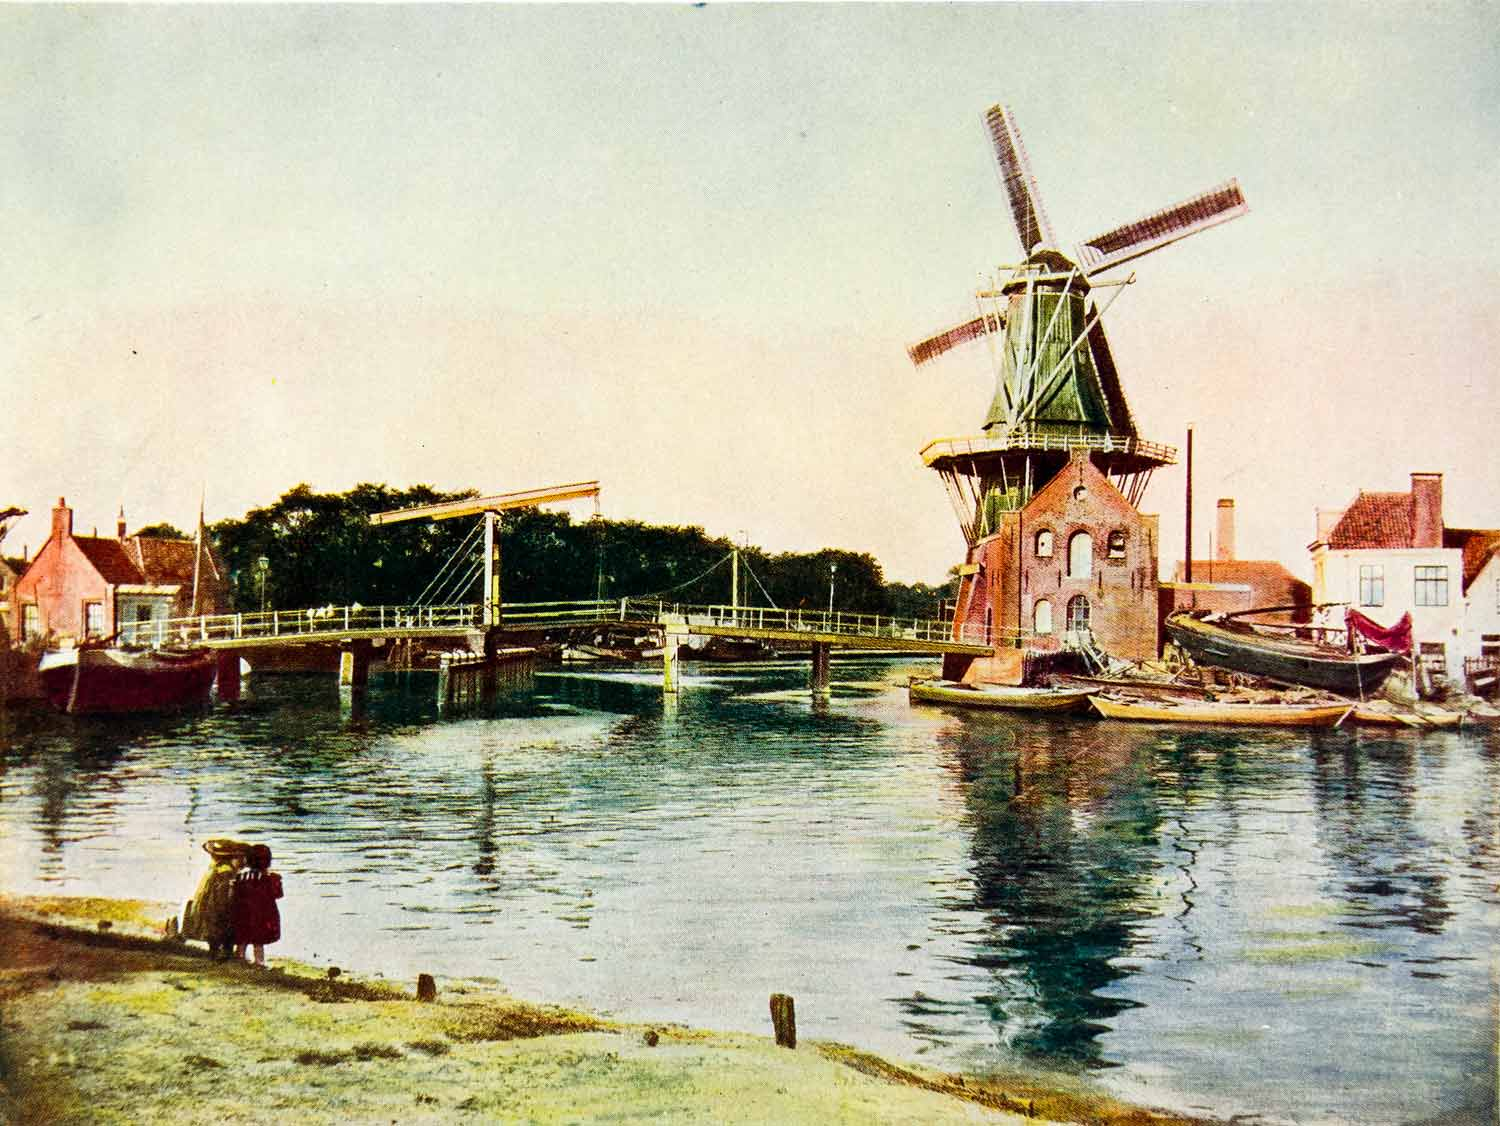 1924 Print The Hague Holland Netherlands Europe Dutch Windmill North Sea XGAG1